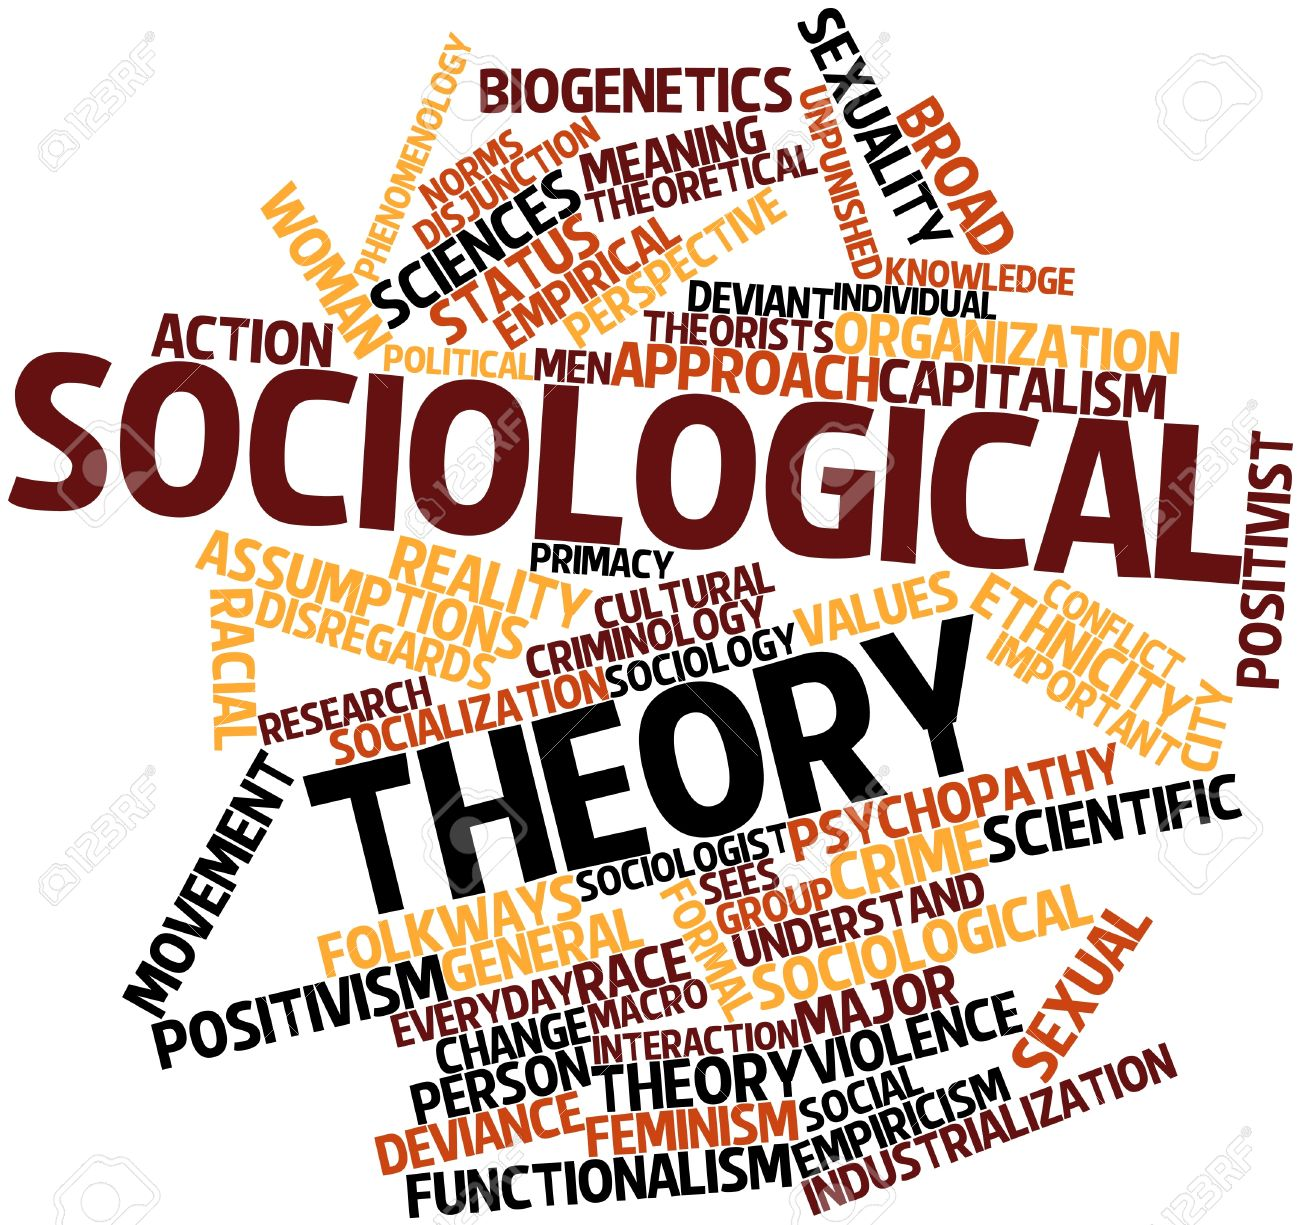 GCSE Sociology - theoretical perspectives